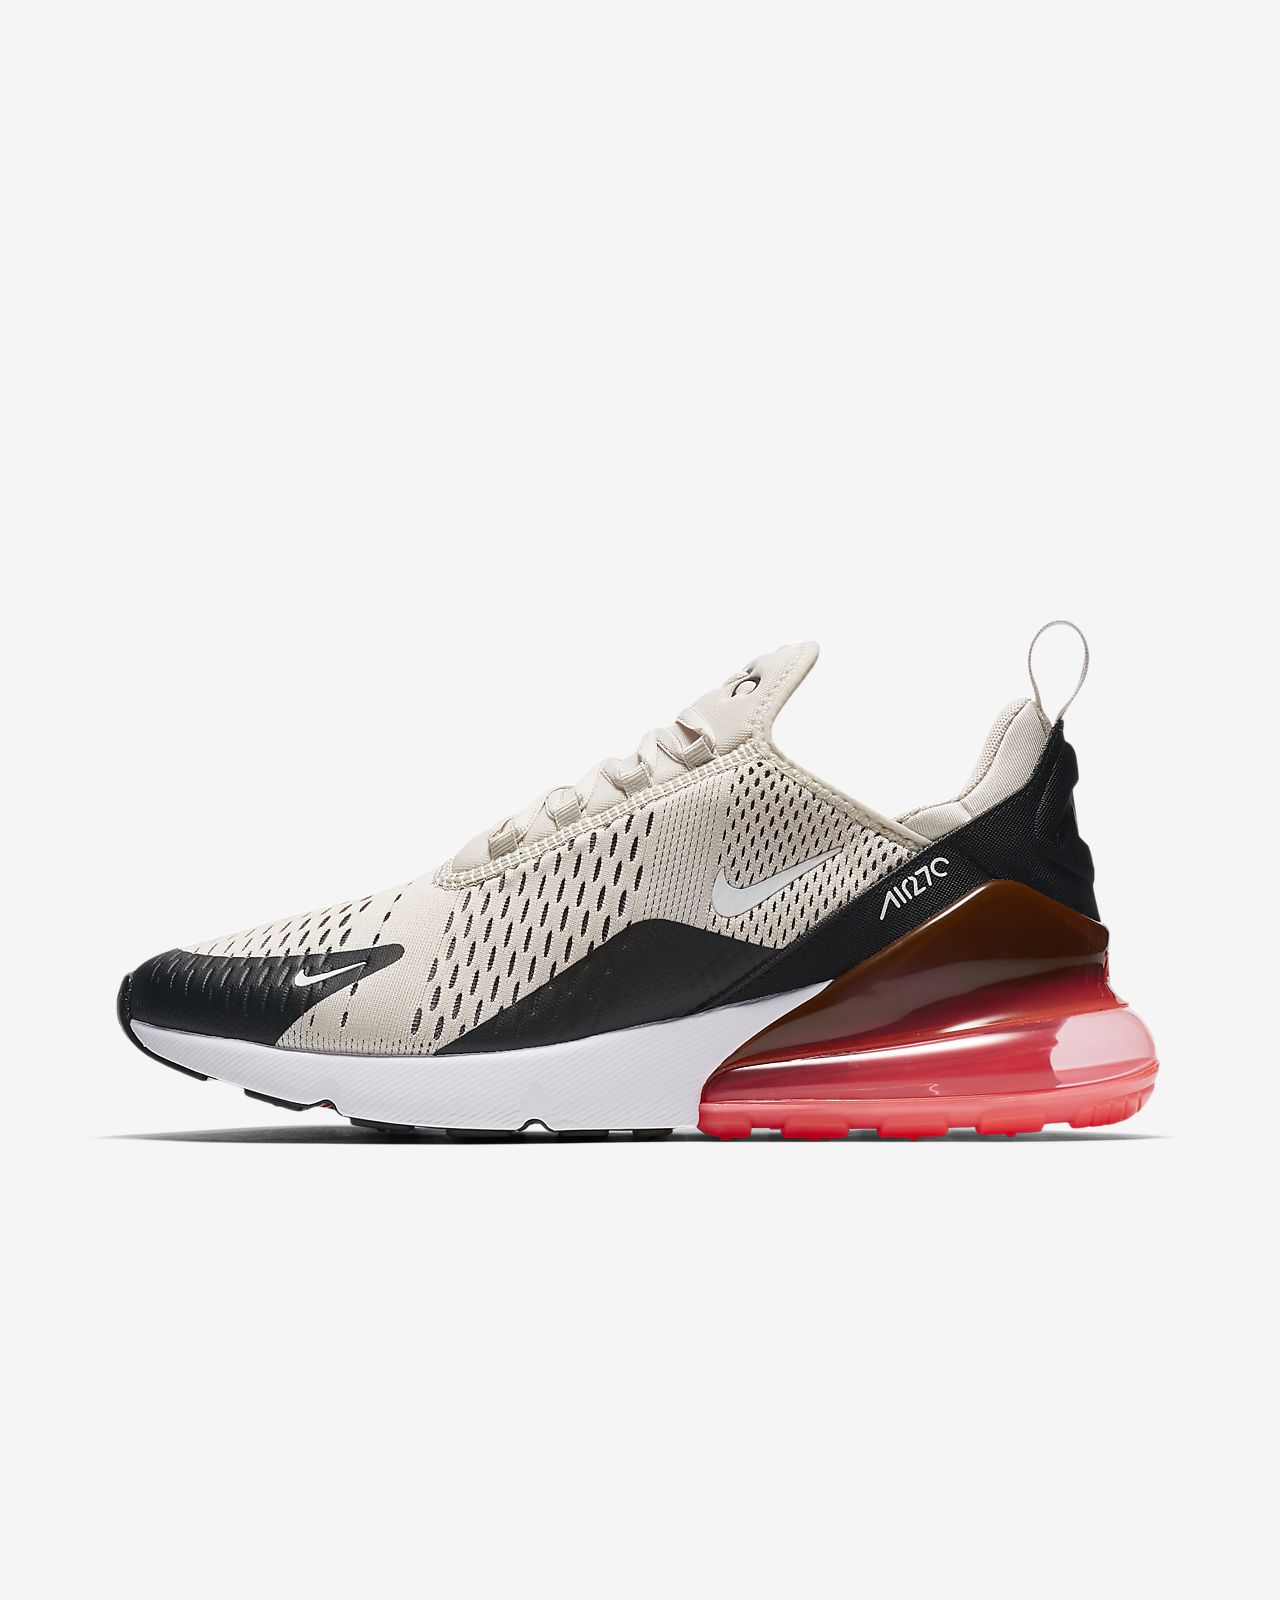 9875649f767 Nike Air Max 270 Men's Shoe